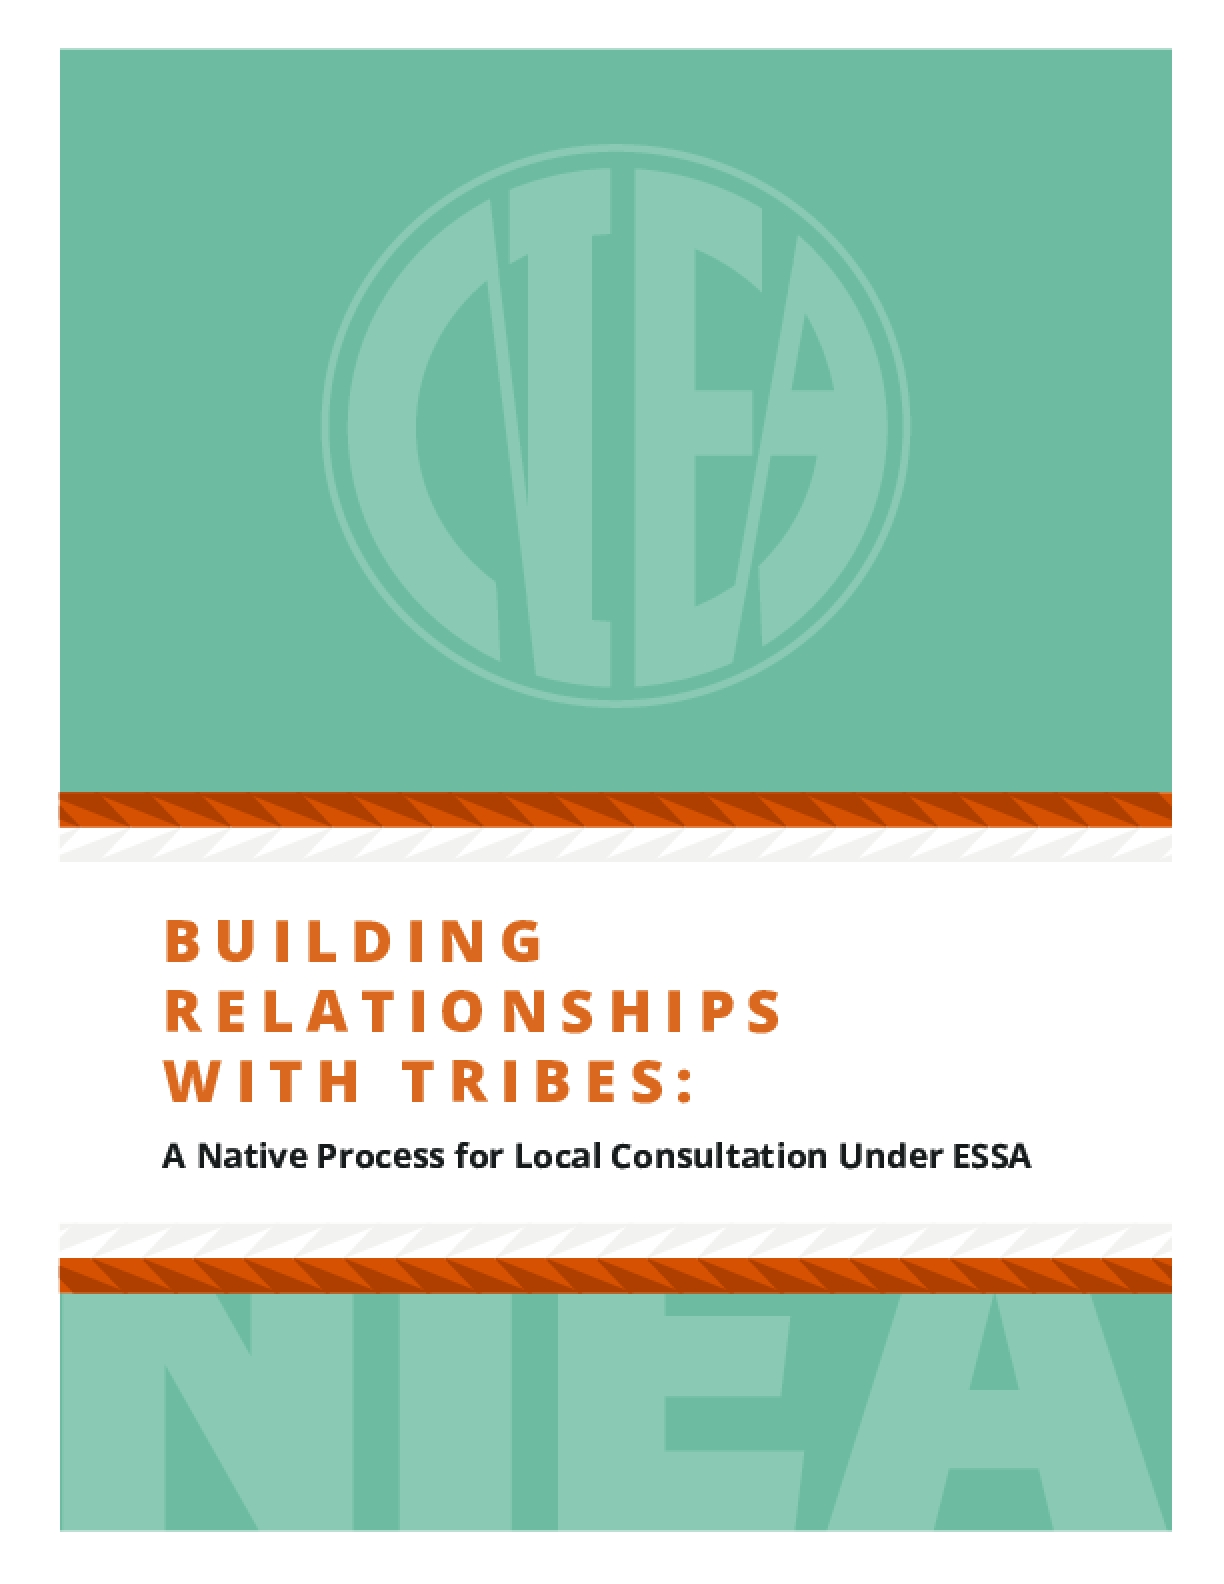 Building Relationship with Tribes: A Native Process for Local Consultation under ESSA